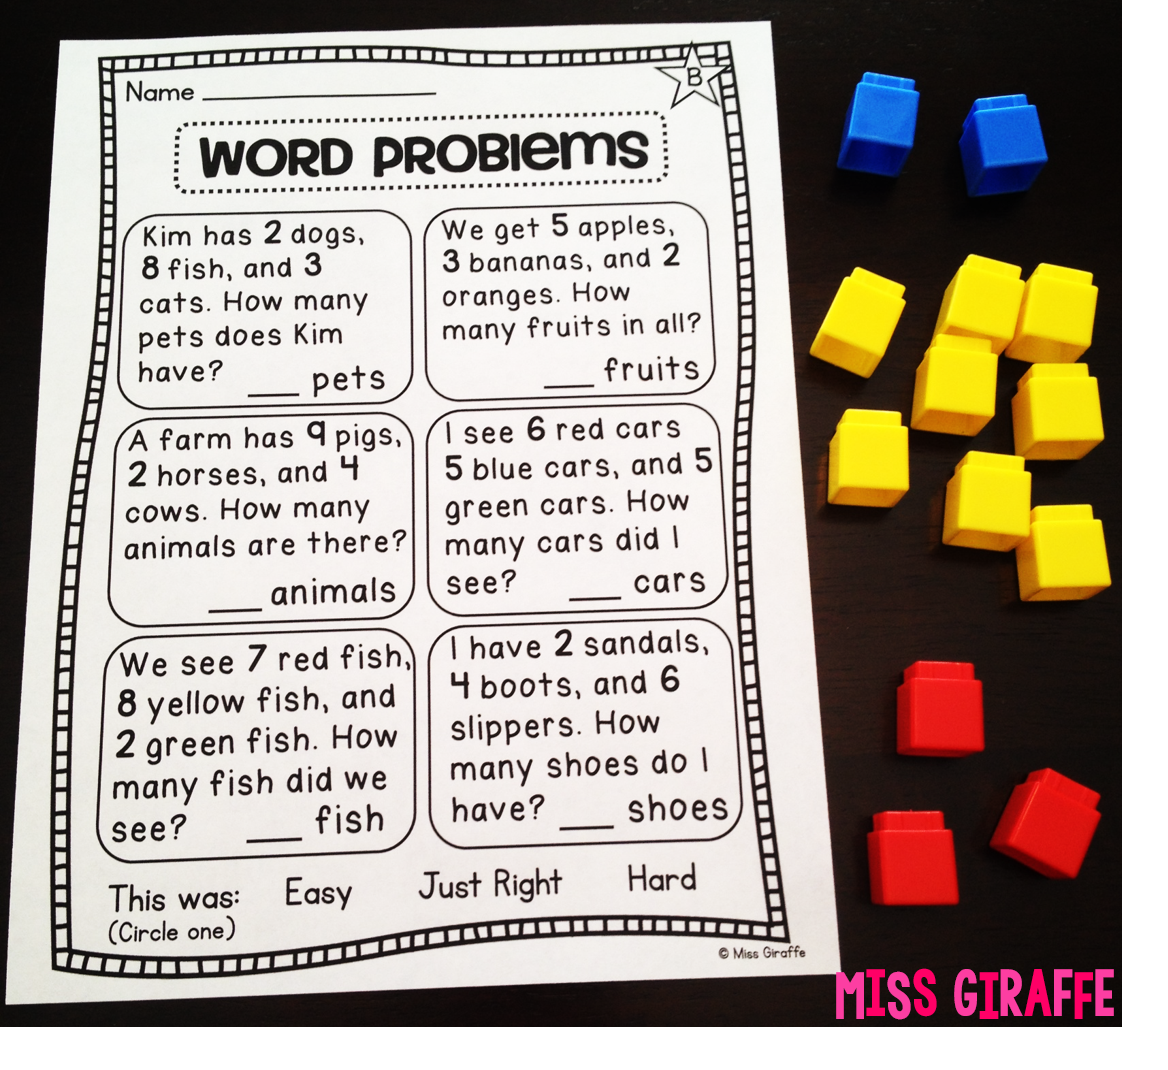 Miss Giraffes Class Adding 3 Numbers – Addition Word Problems Worksheets for 1st Grade